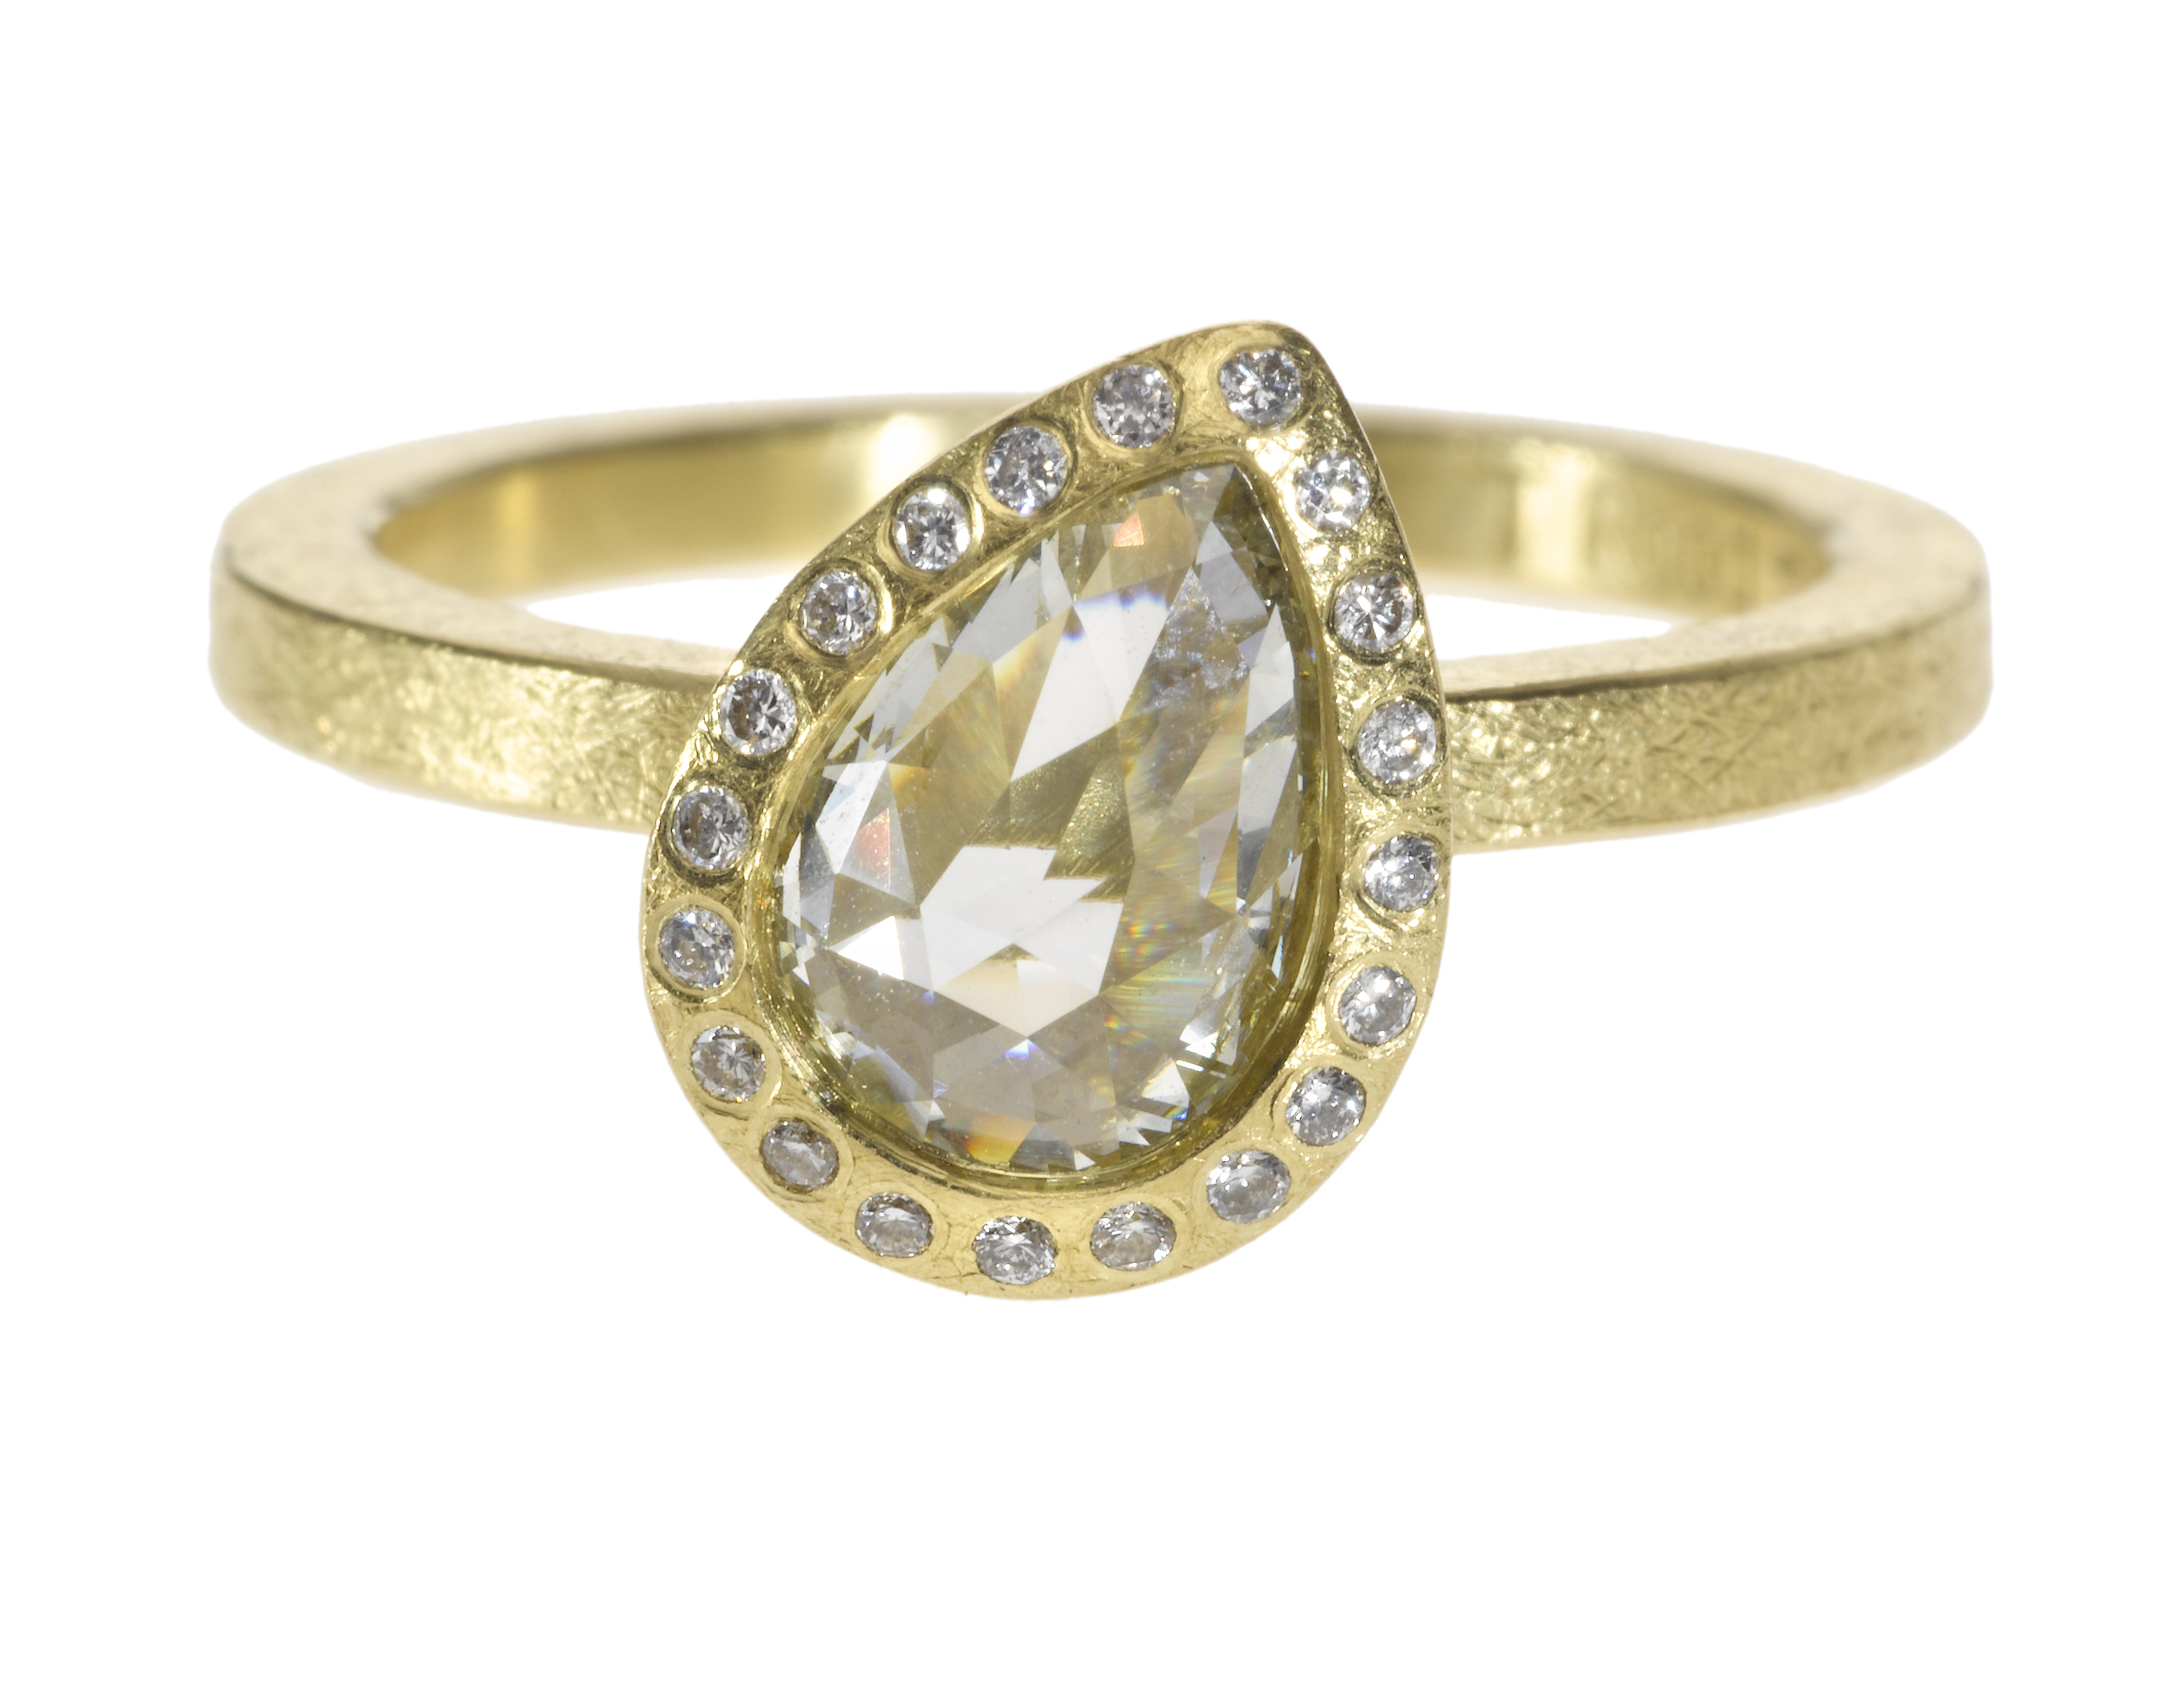 Engagement ring in18k yellowgold withwhite fancy cut diamonds(1.28ctw) andwhite brilliant cut diamonds(.082ctw), $14,740,  available at Todd Reed .